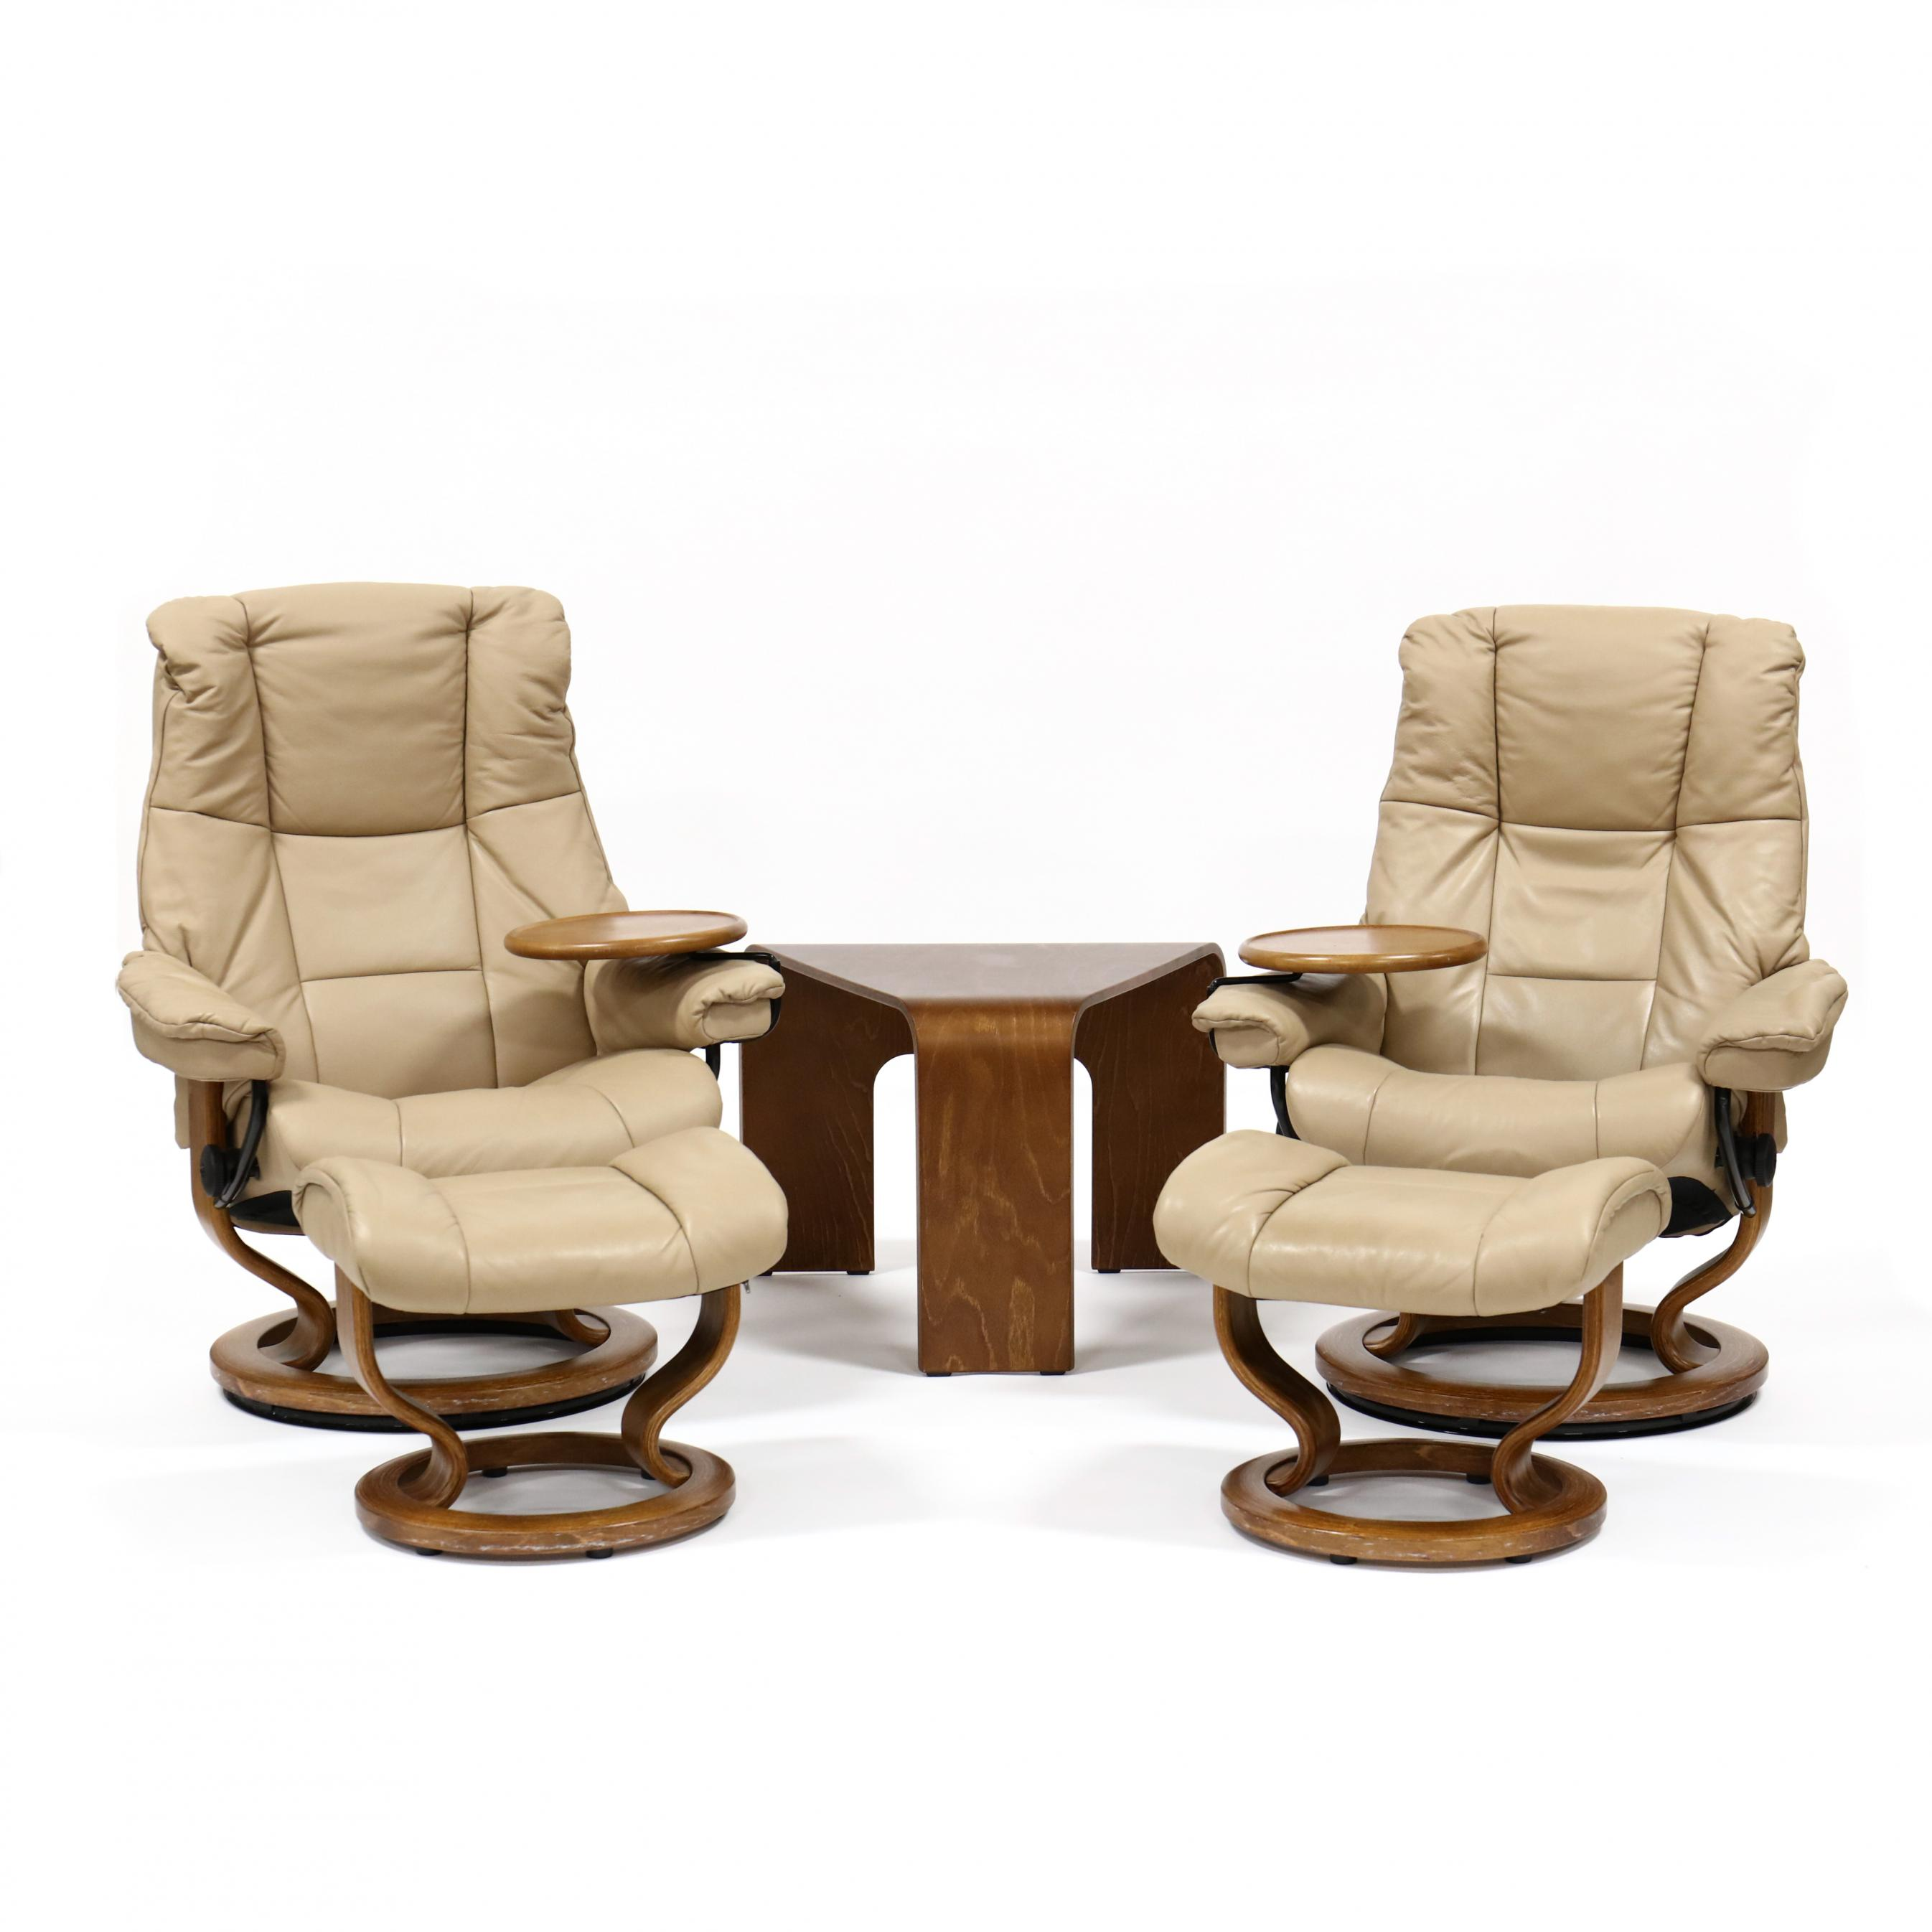 ekornes-pair-of-stressless-leather-chairs-ottomans-and-table